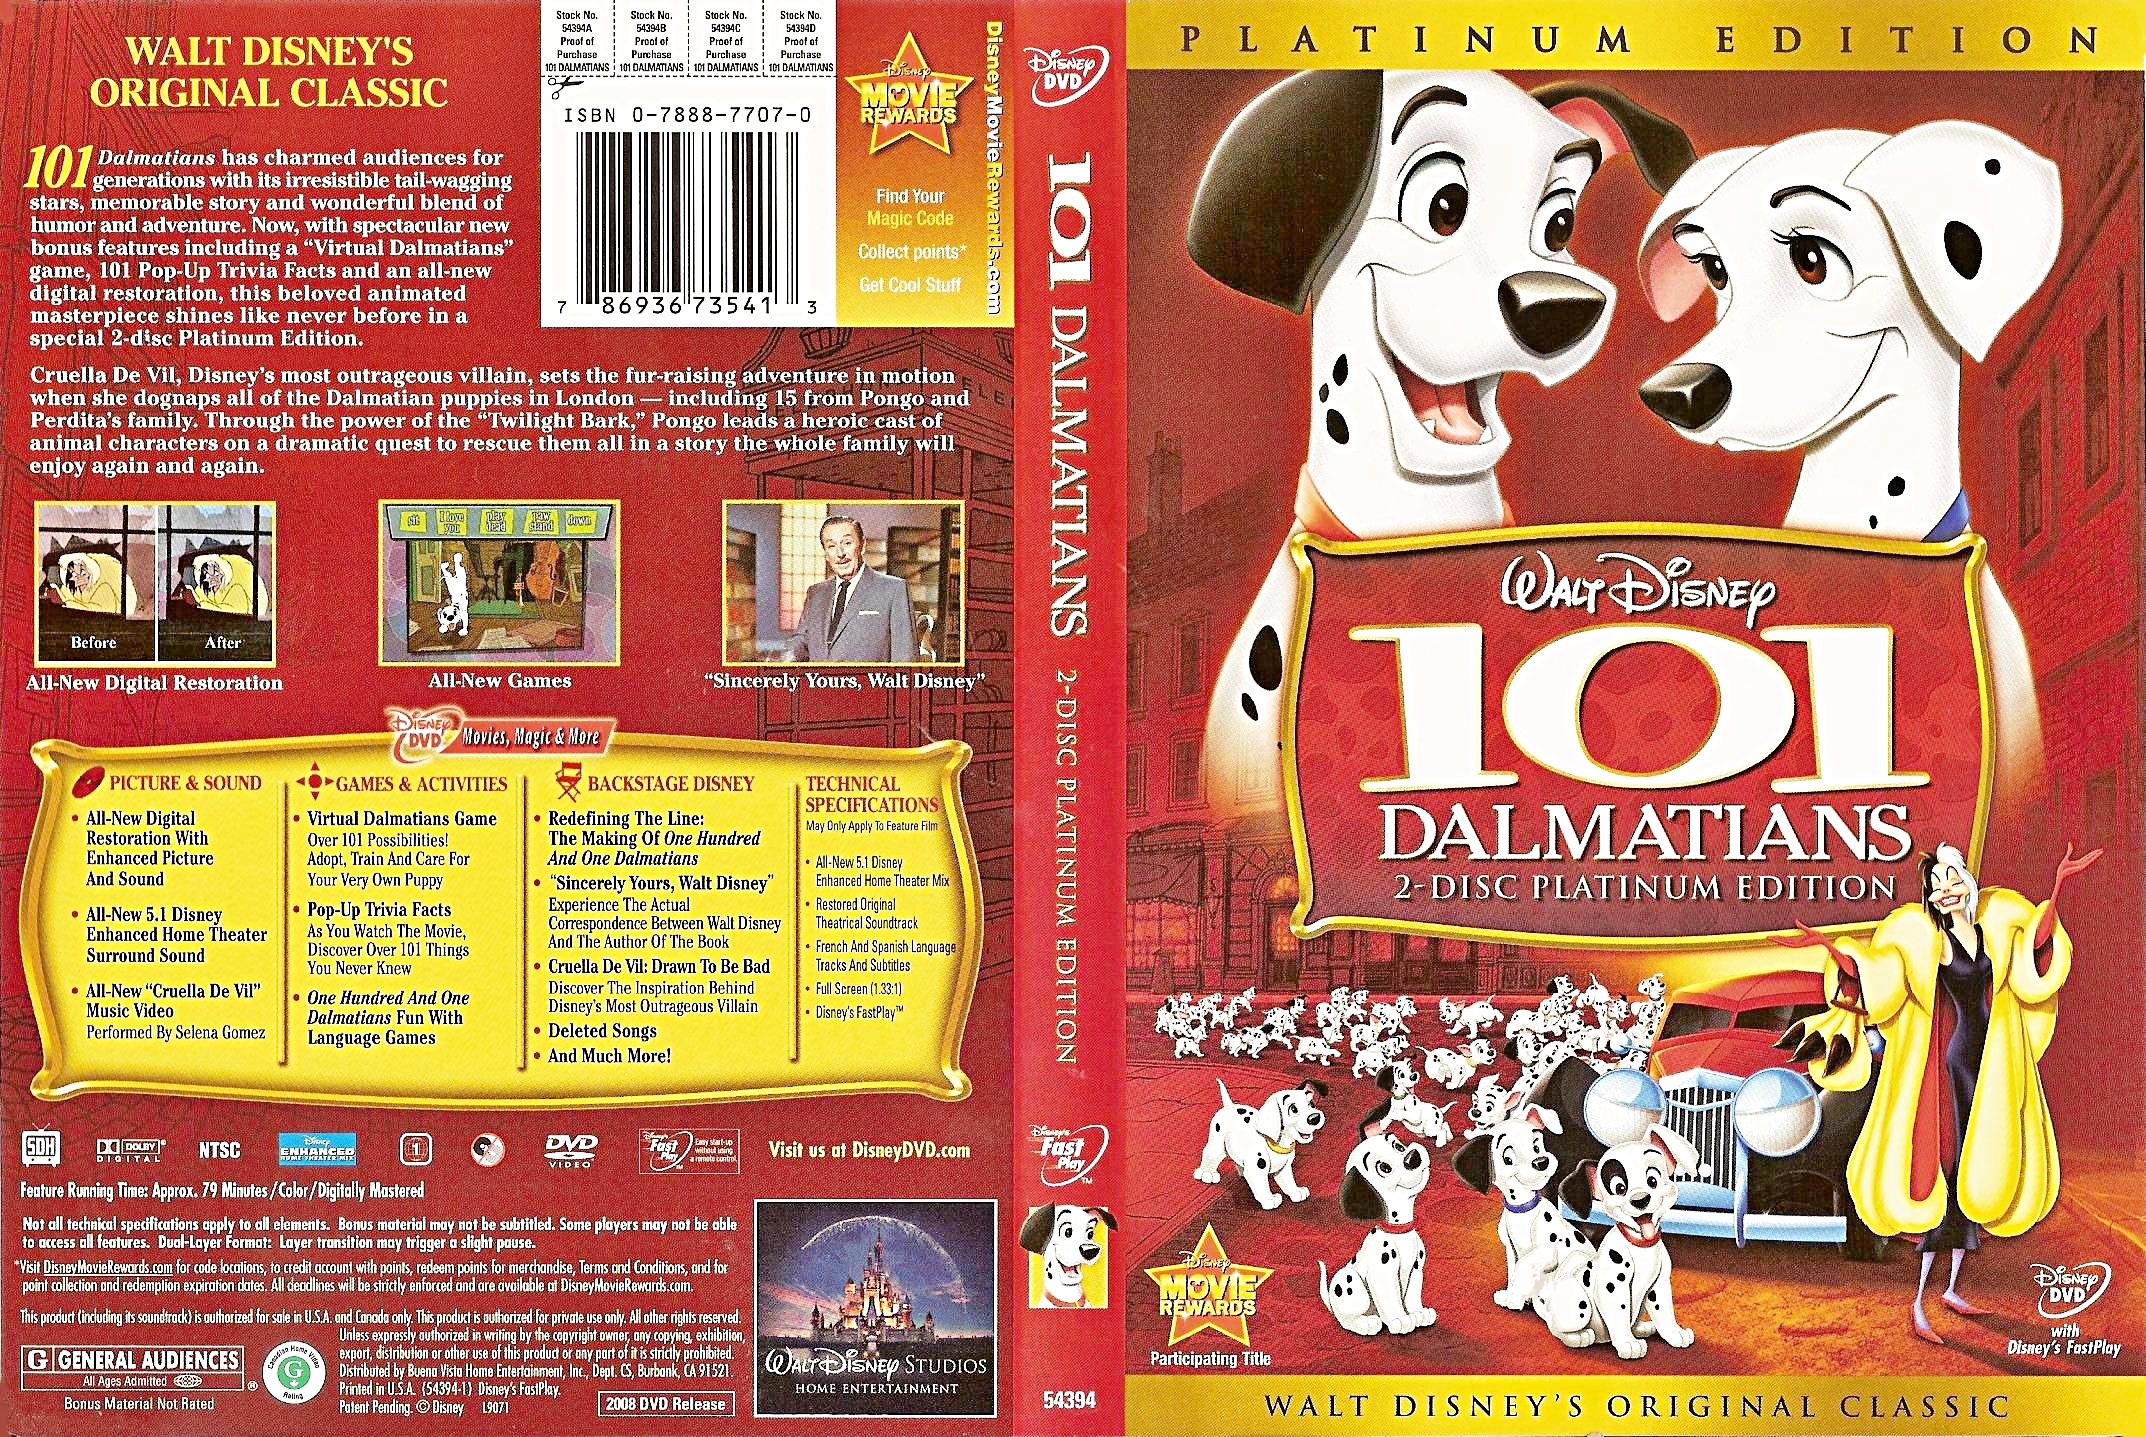 Walt ディズニー DVD Covers - 101 Dalmatians: 2 Disc Platinum Edition